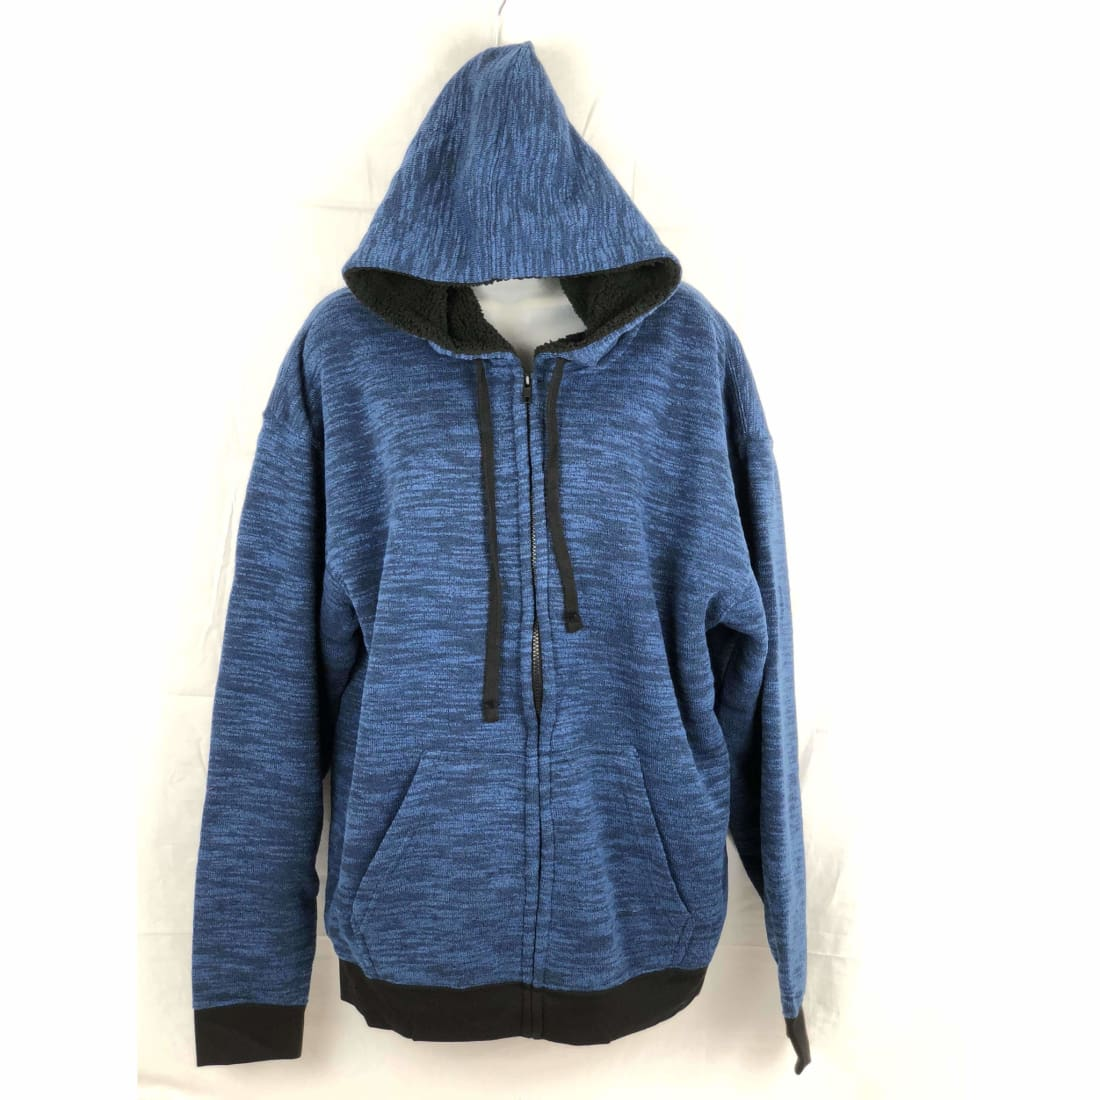 Salt Creek Mens Fleece Full Zip Sherpa Lined Hoodie M / Navy Sweatshirts & Hoodies